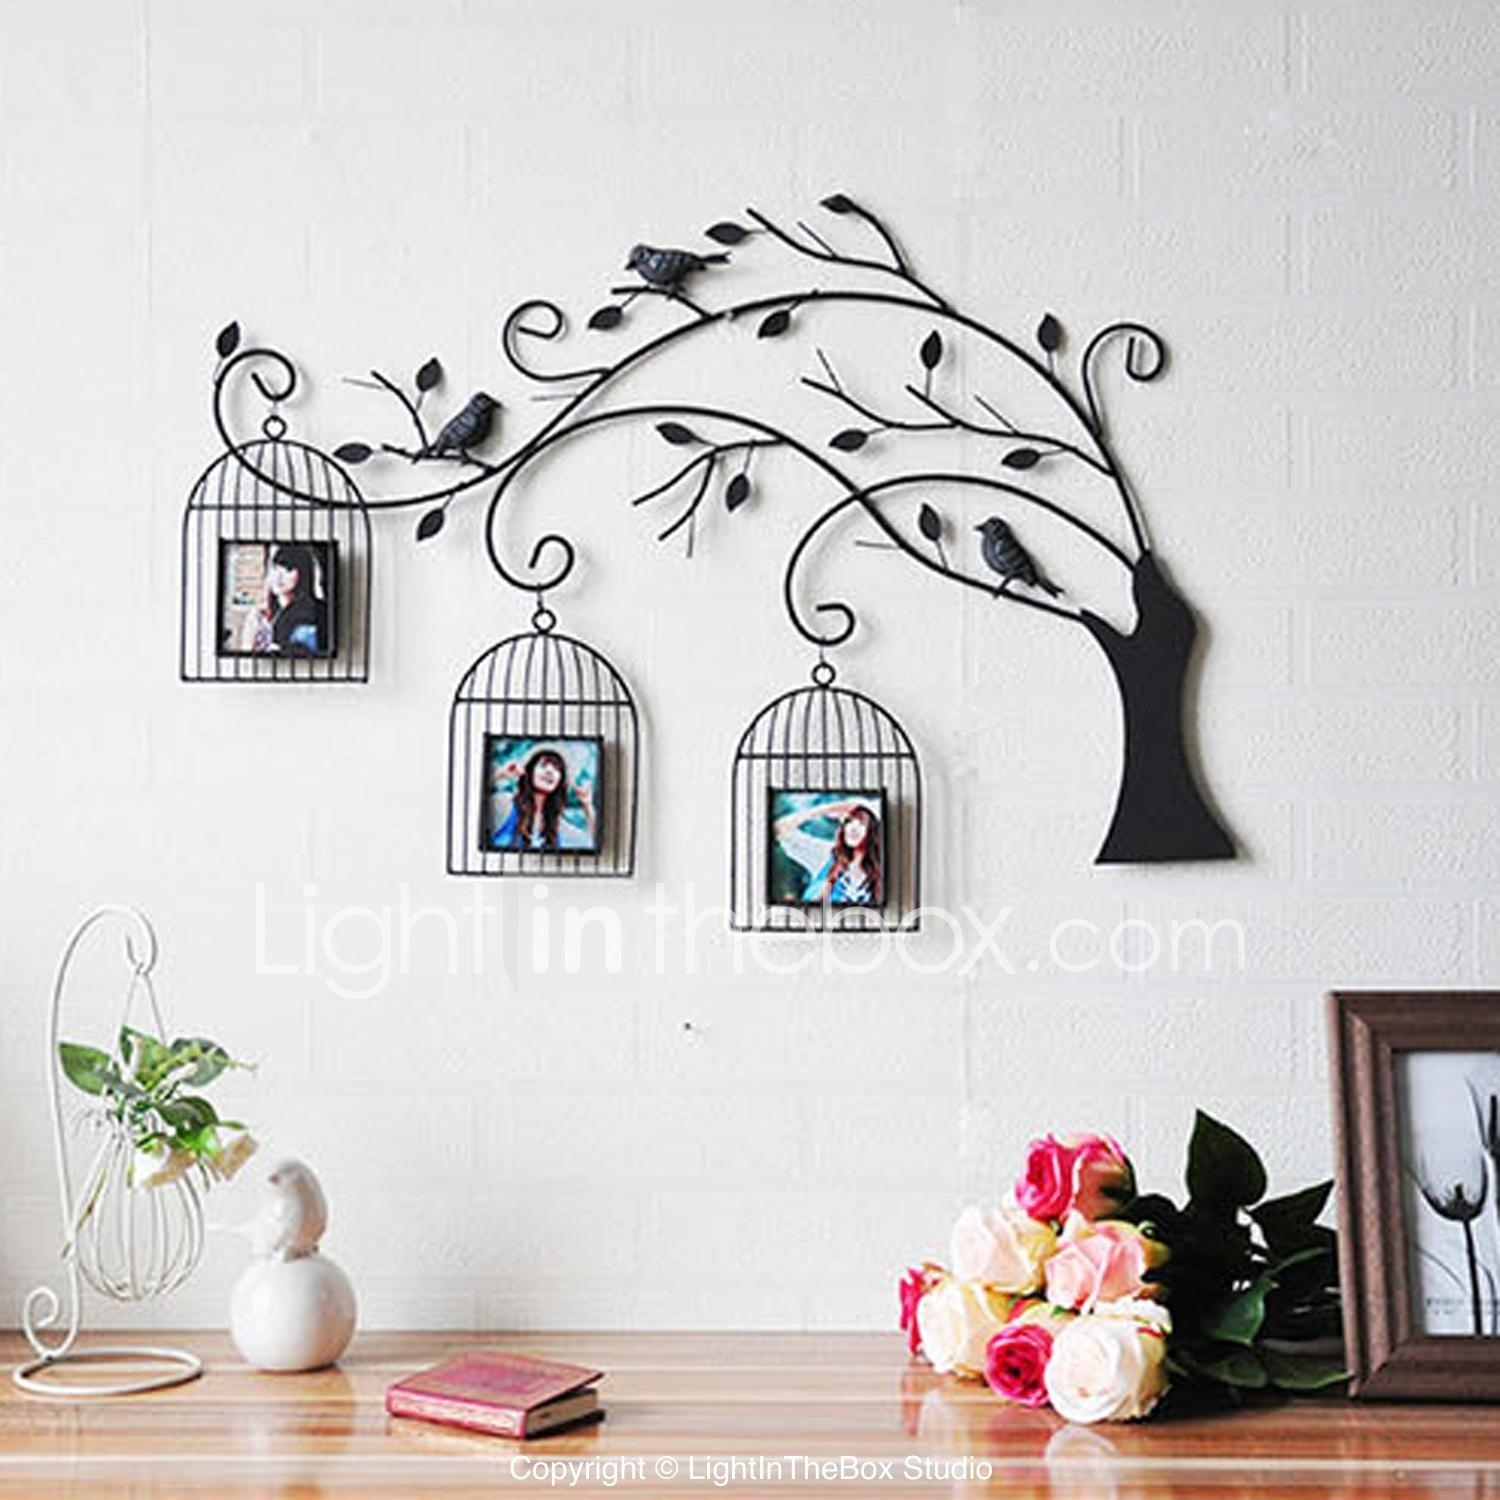 Decoracion De Paredes Con Cuadros 20 Photos Flying Birds Metal Wall Art Wall Art Ideas